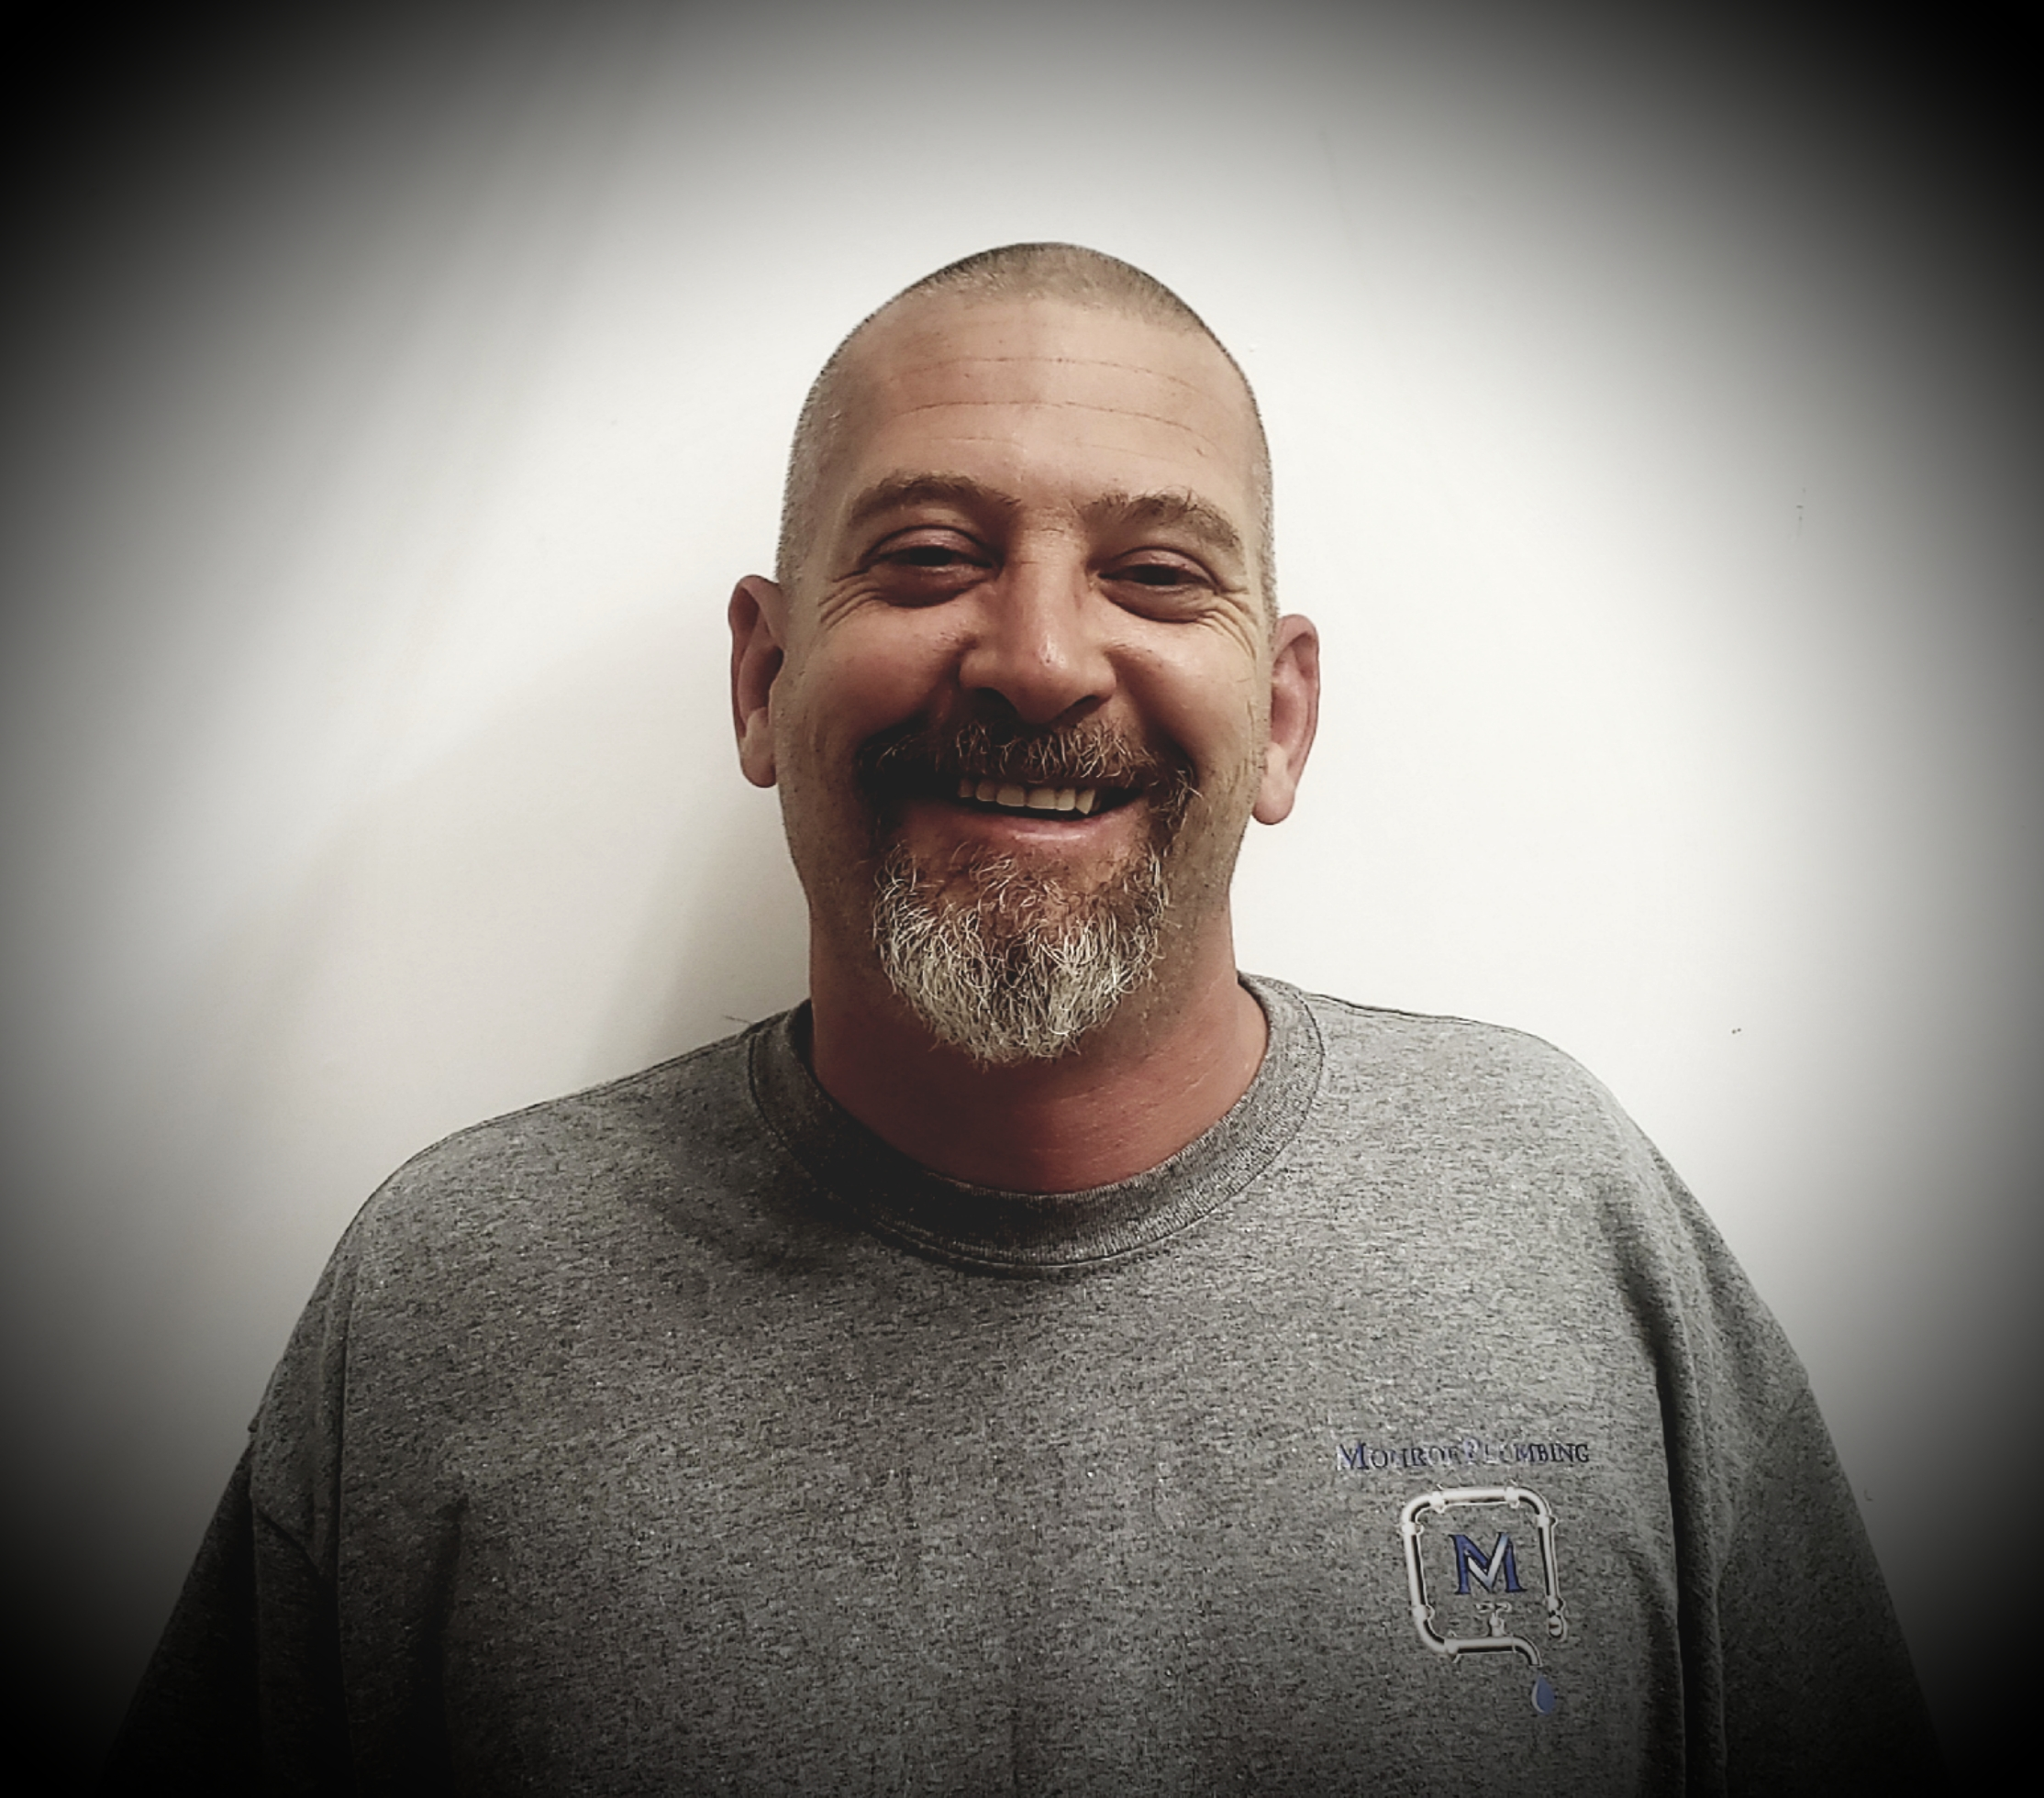 Meet Senior Technician Luke